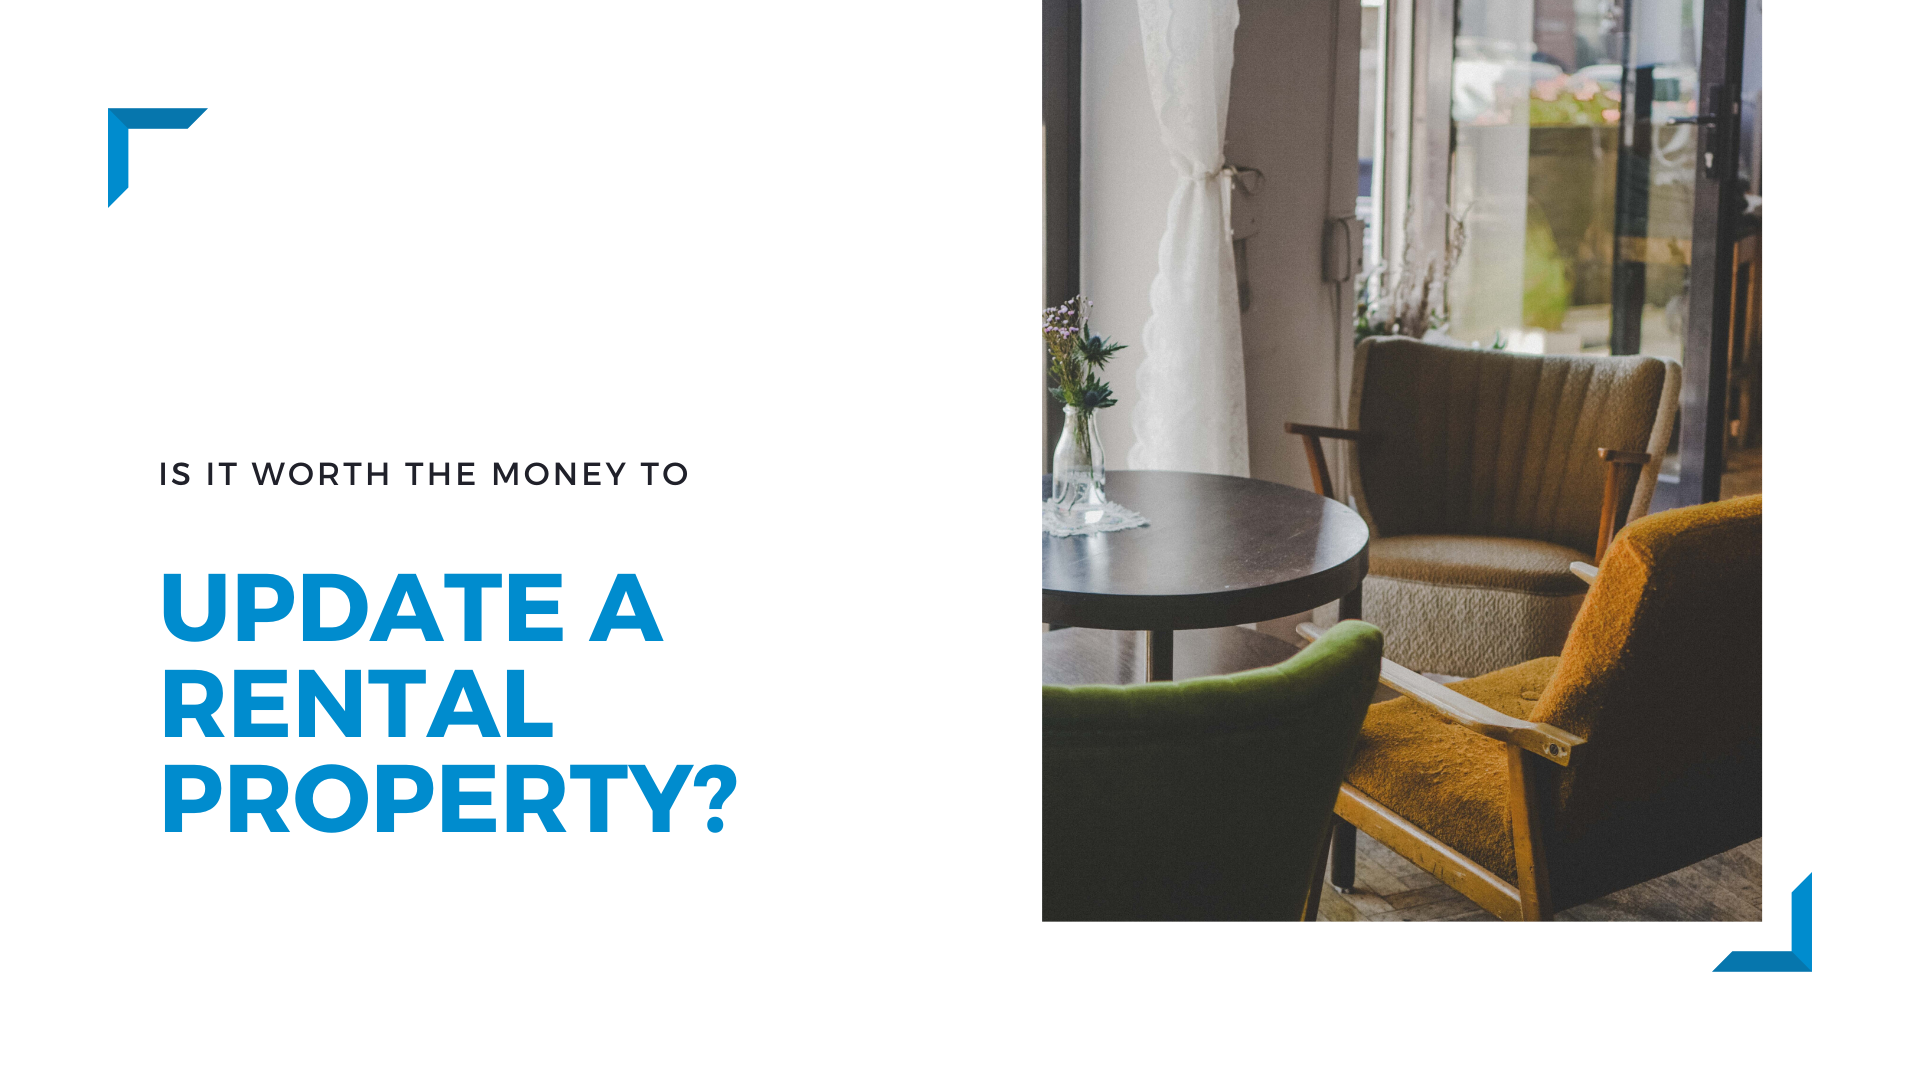 Is it Worth the Money to Update a Rental Property in Cary, NC?